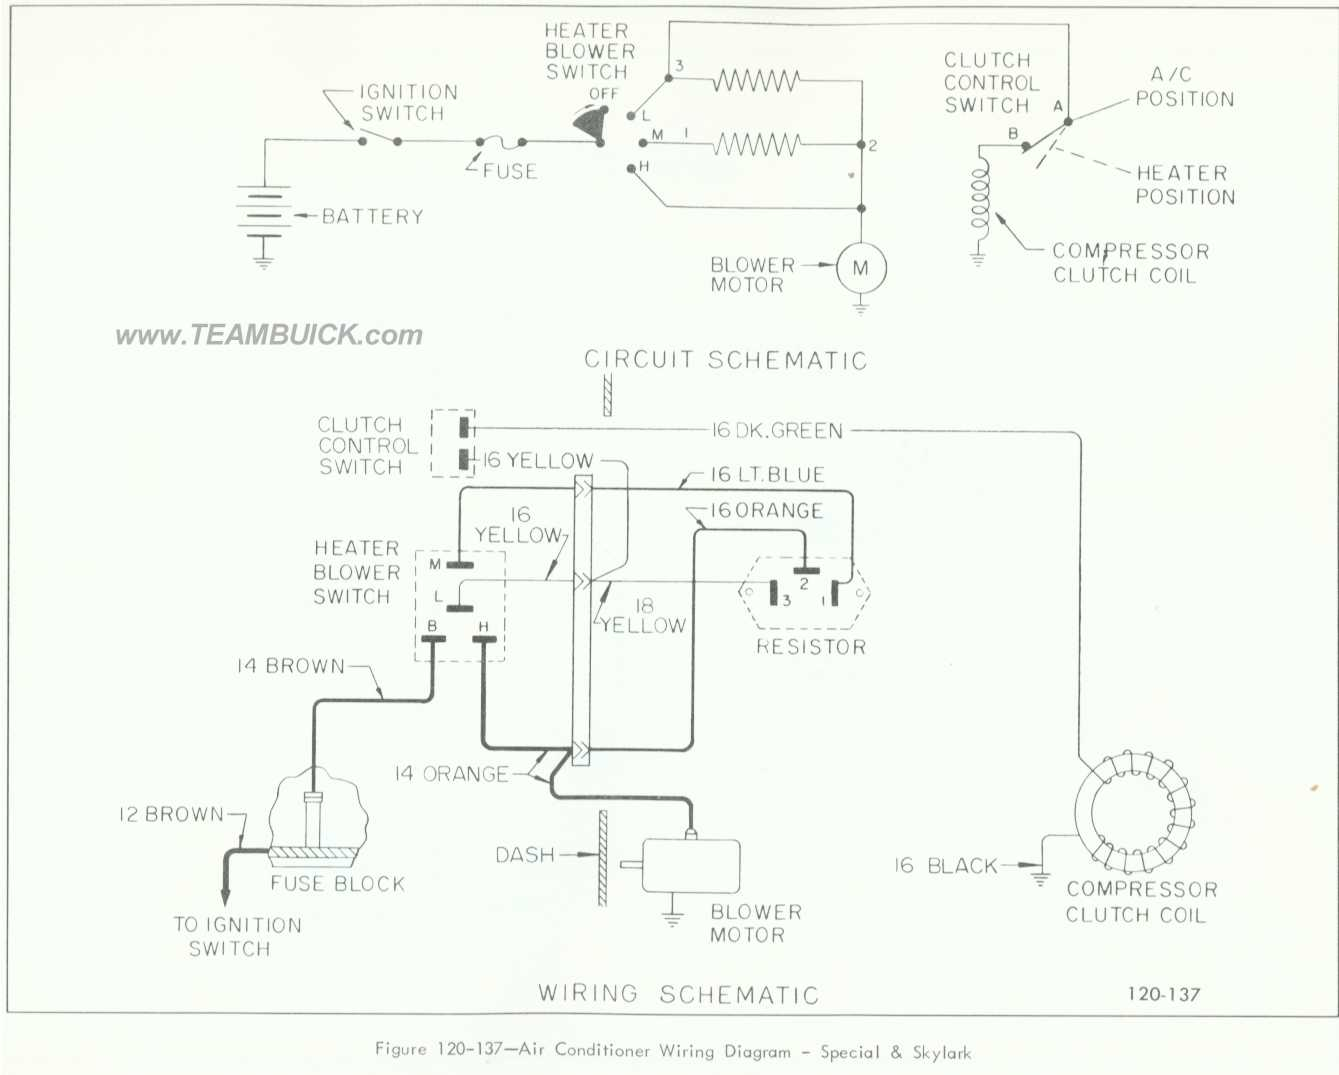 1966 skylark wiring schematic wiring diagram update 1955 buick heater & air conditioner